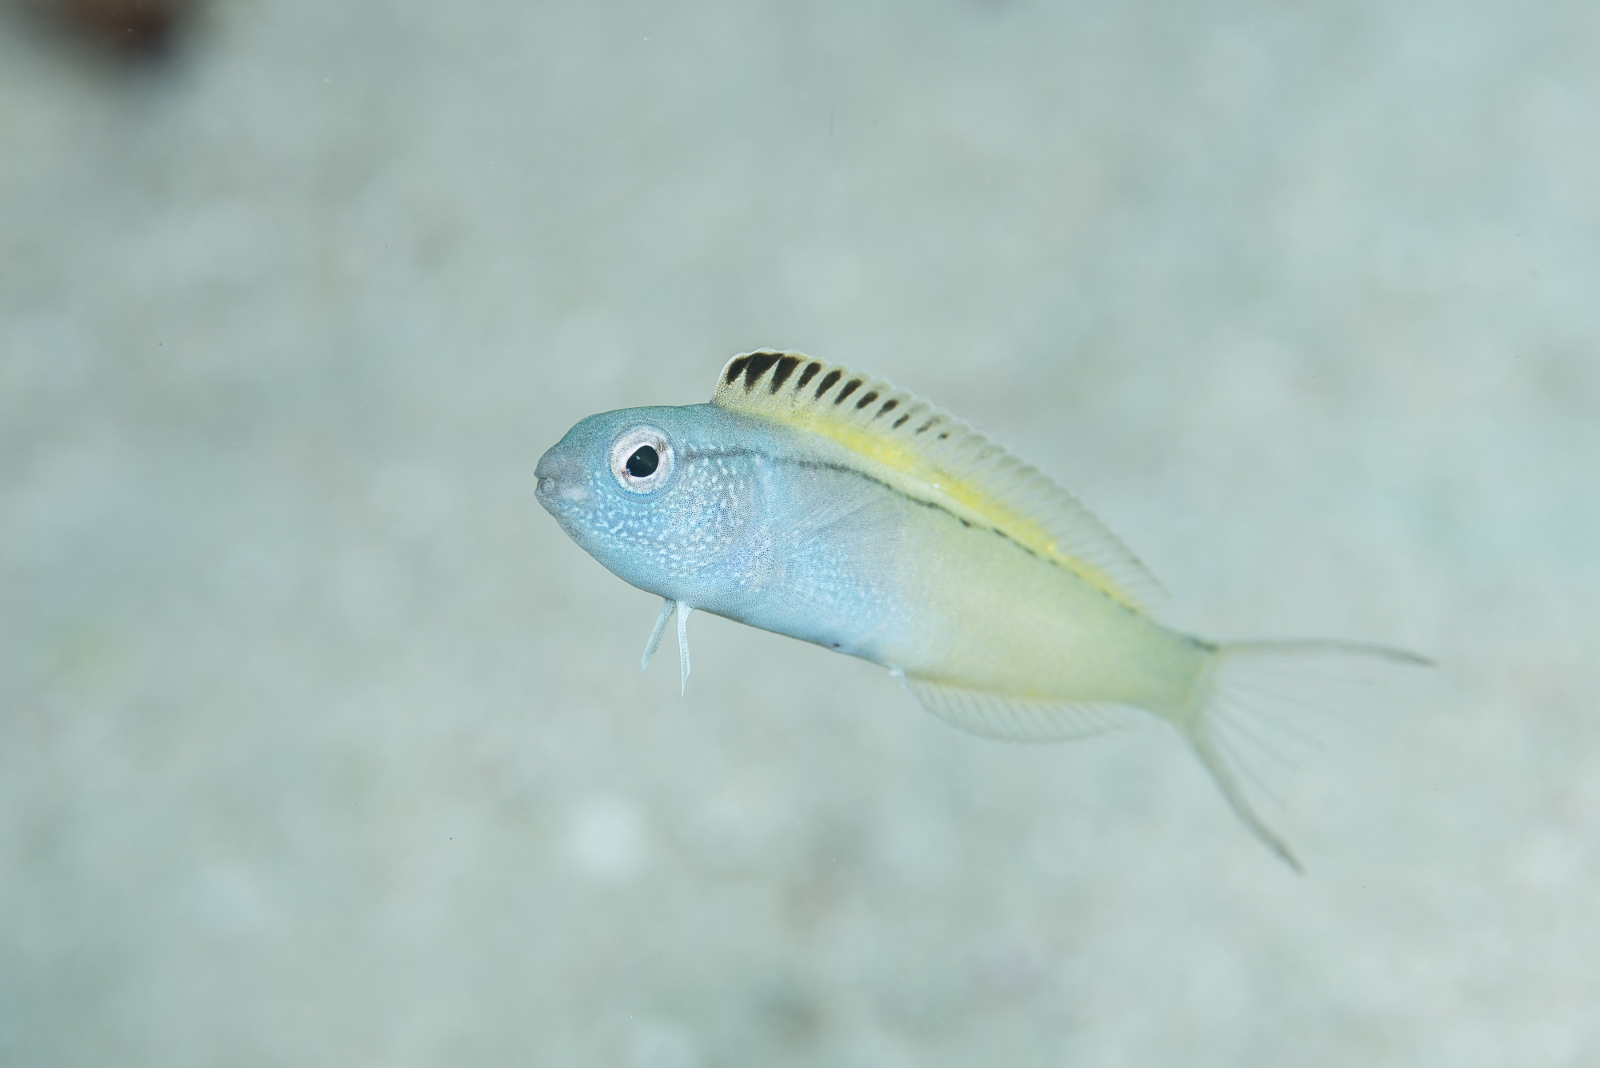 Venom of Tiny Fish Could Lead to New Pain Treatments